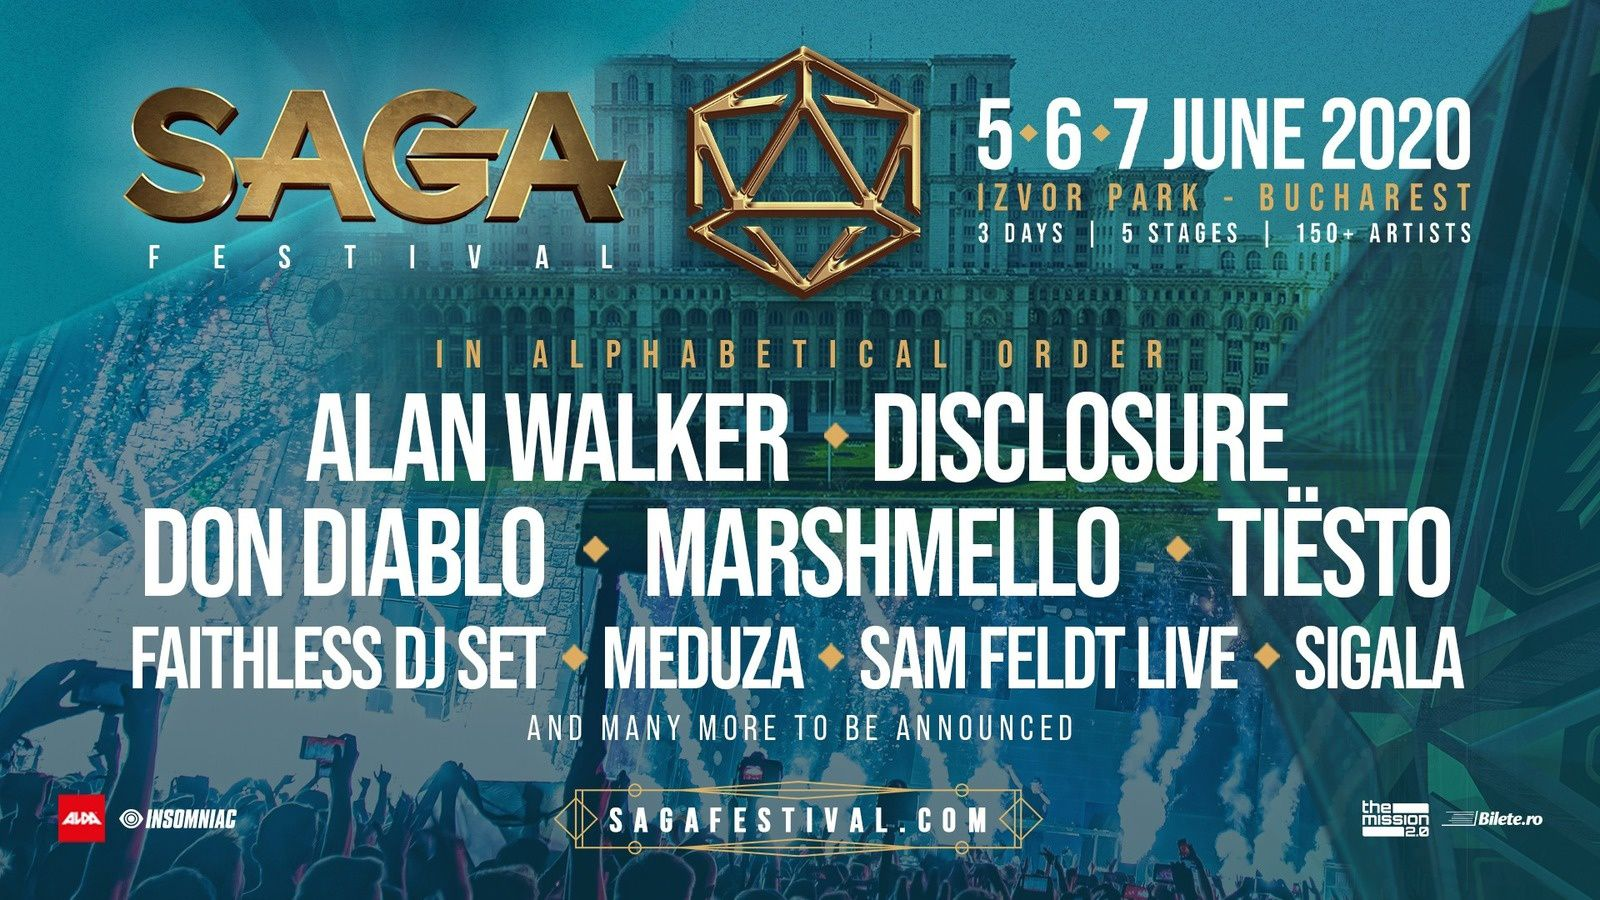 Tiësto date | SAGA Festival | Bucharest, Romania - june 5/7, 2020